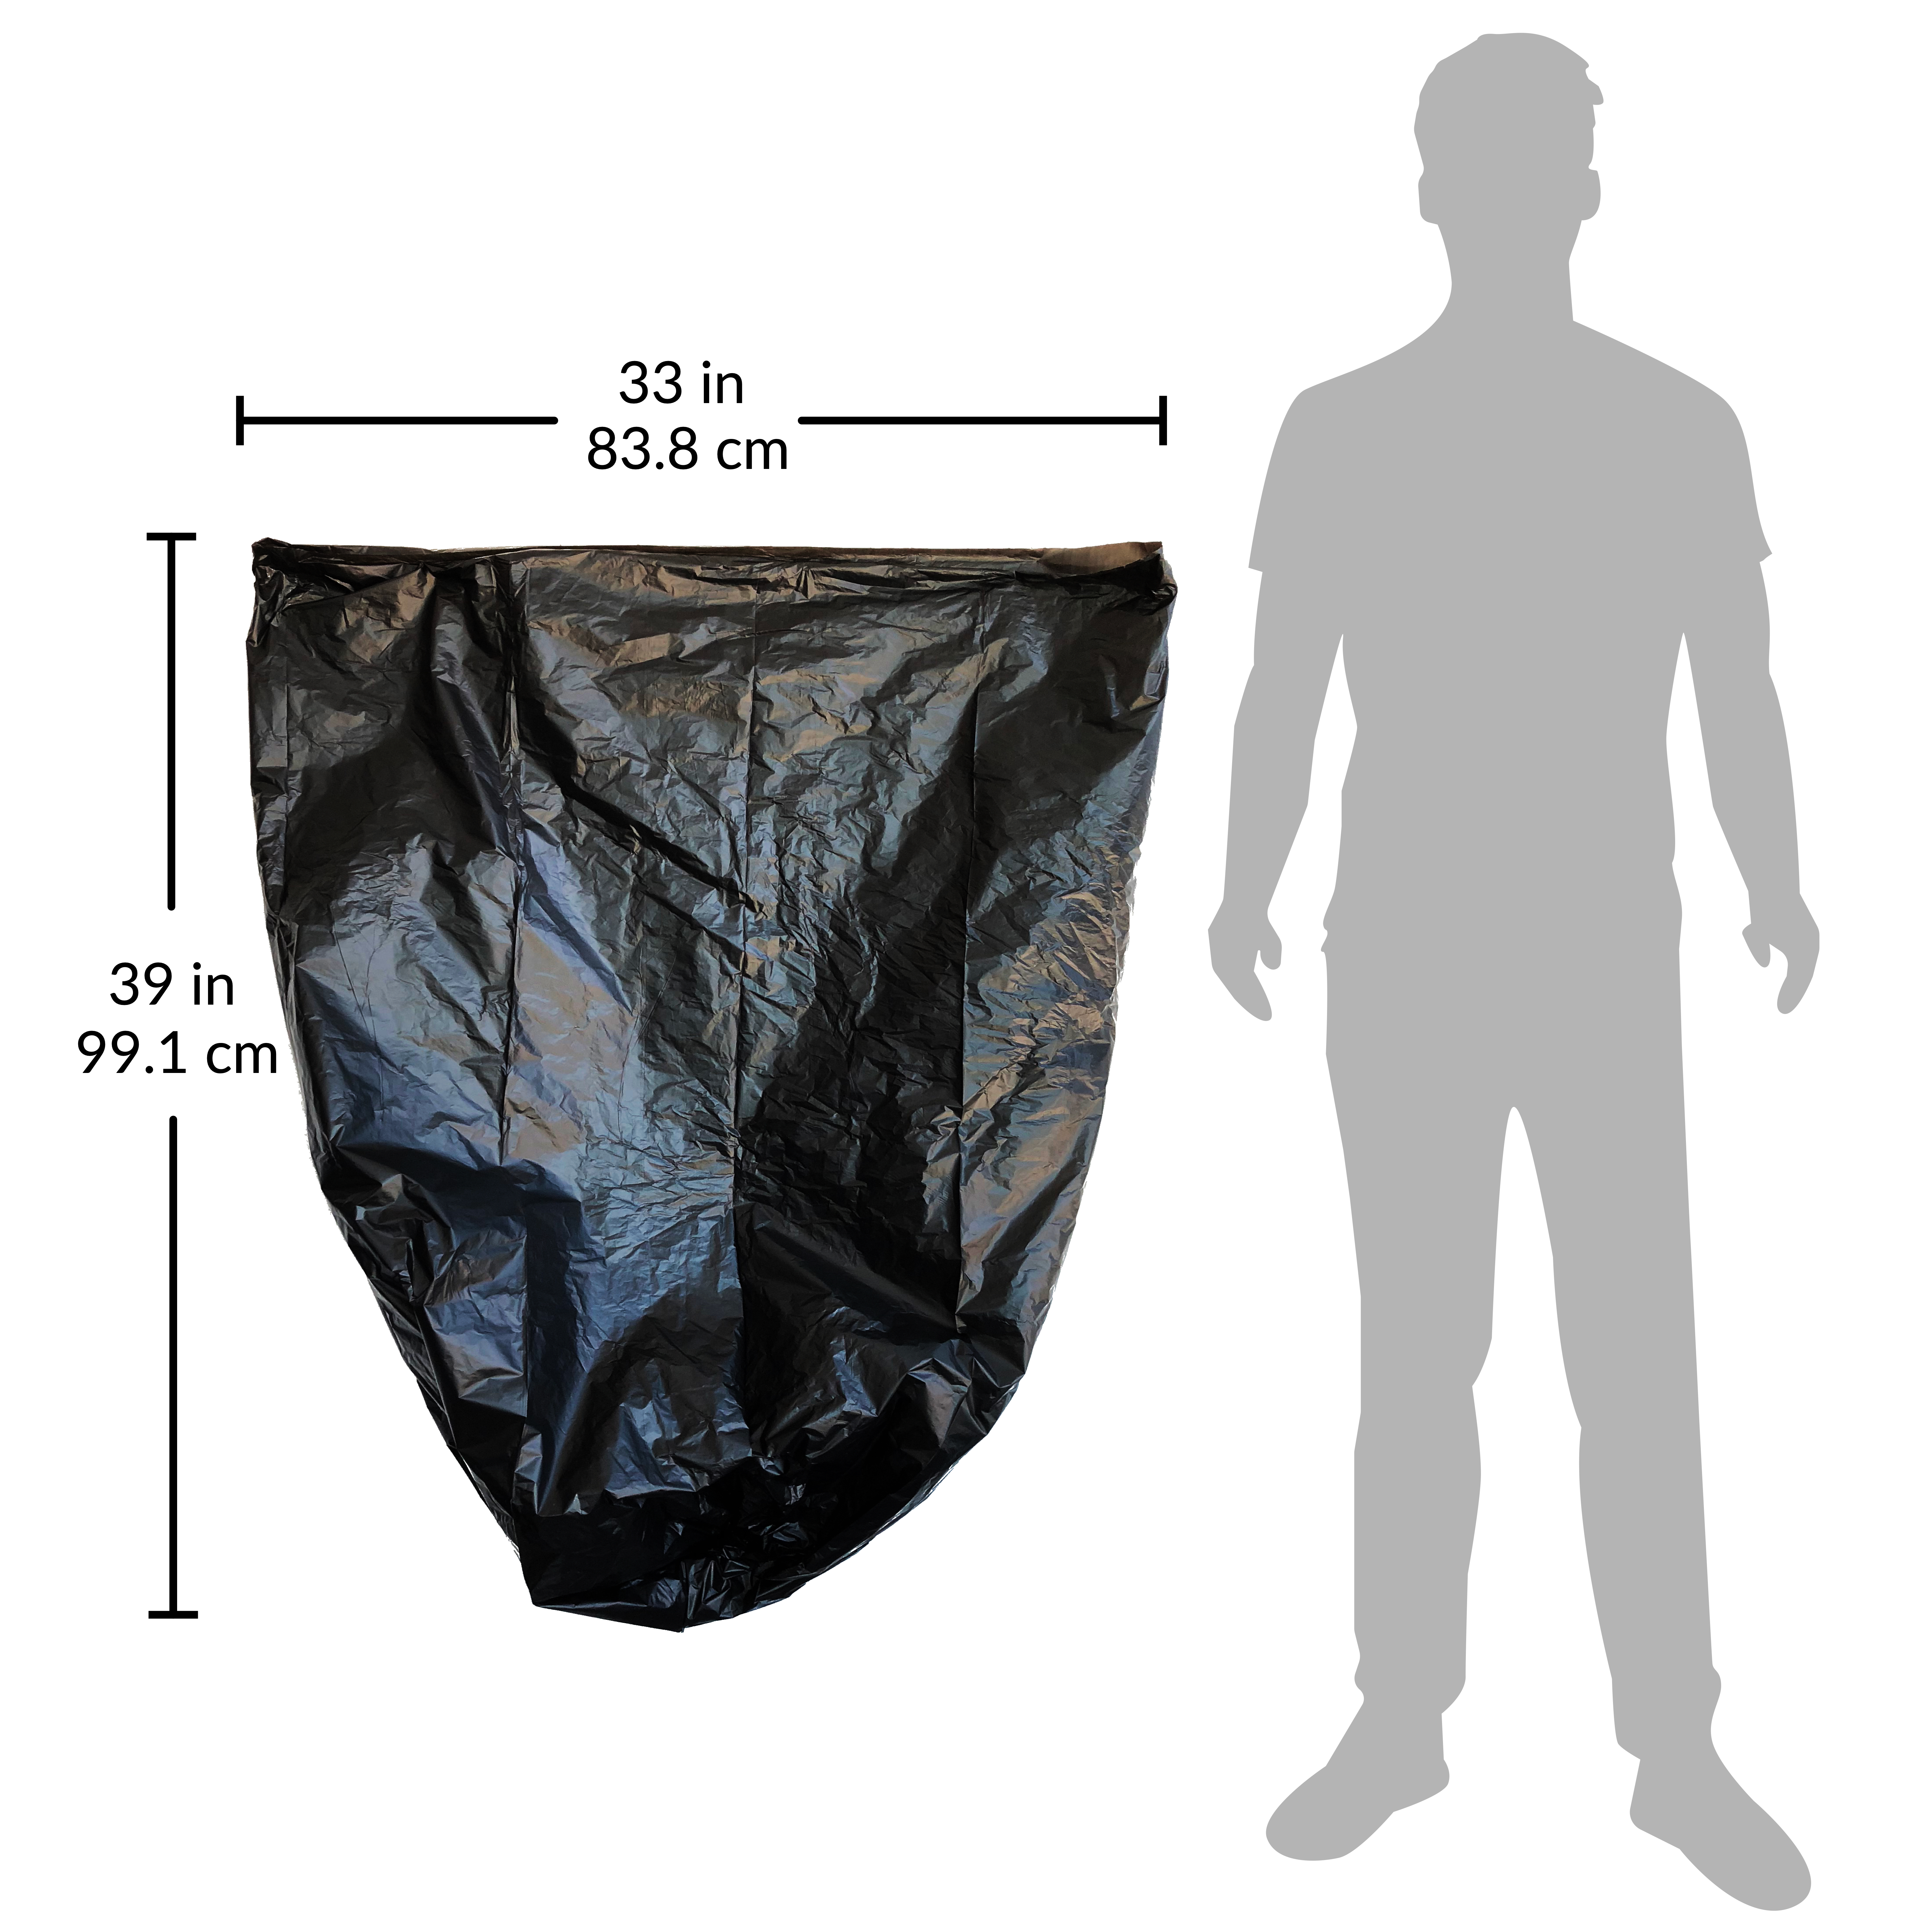 Reli-Recyclable-Eco-Friendly-Trash-Bags-33-Gallon-150-Count-SCS-Certified thumbnail 5